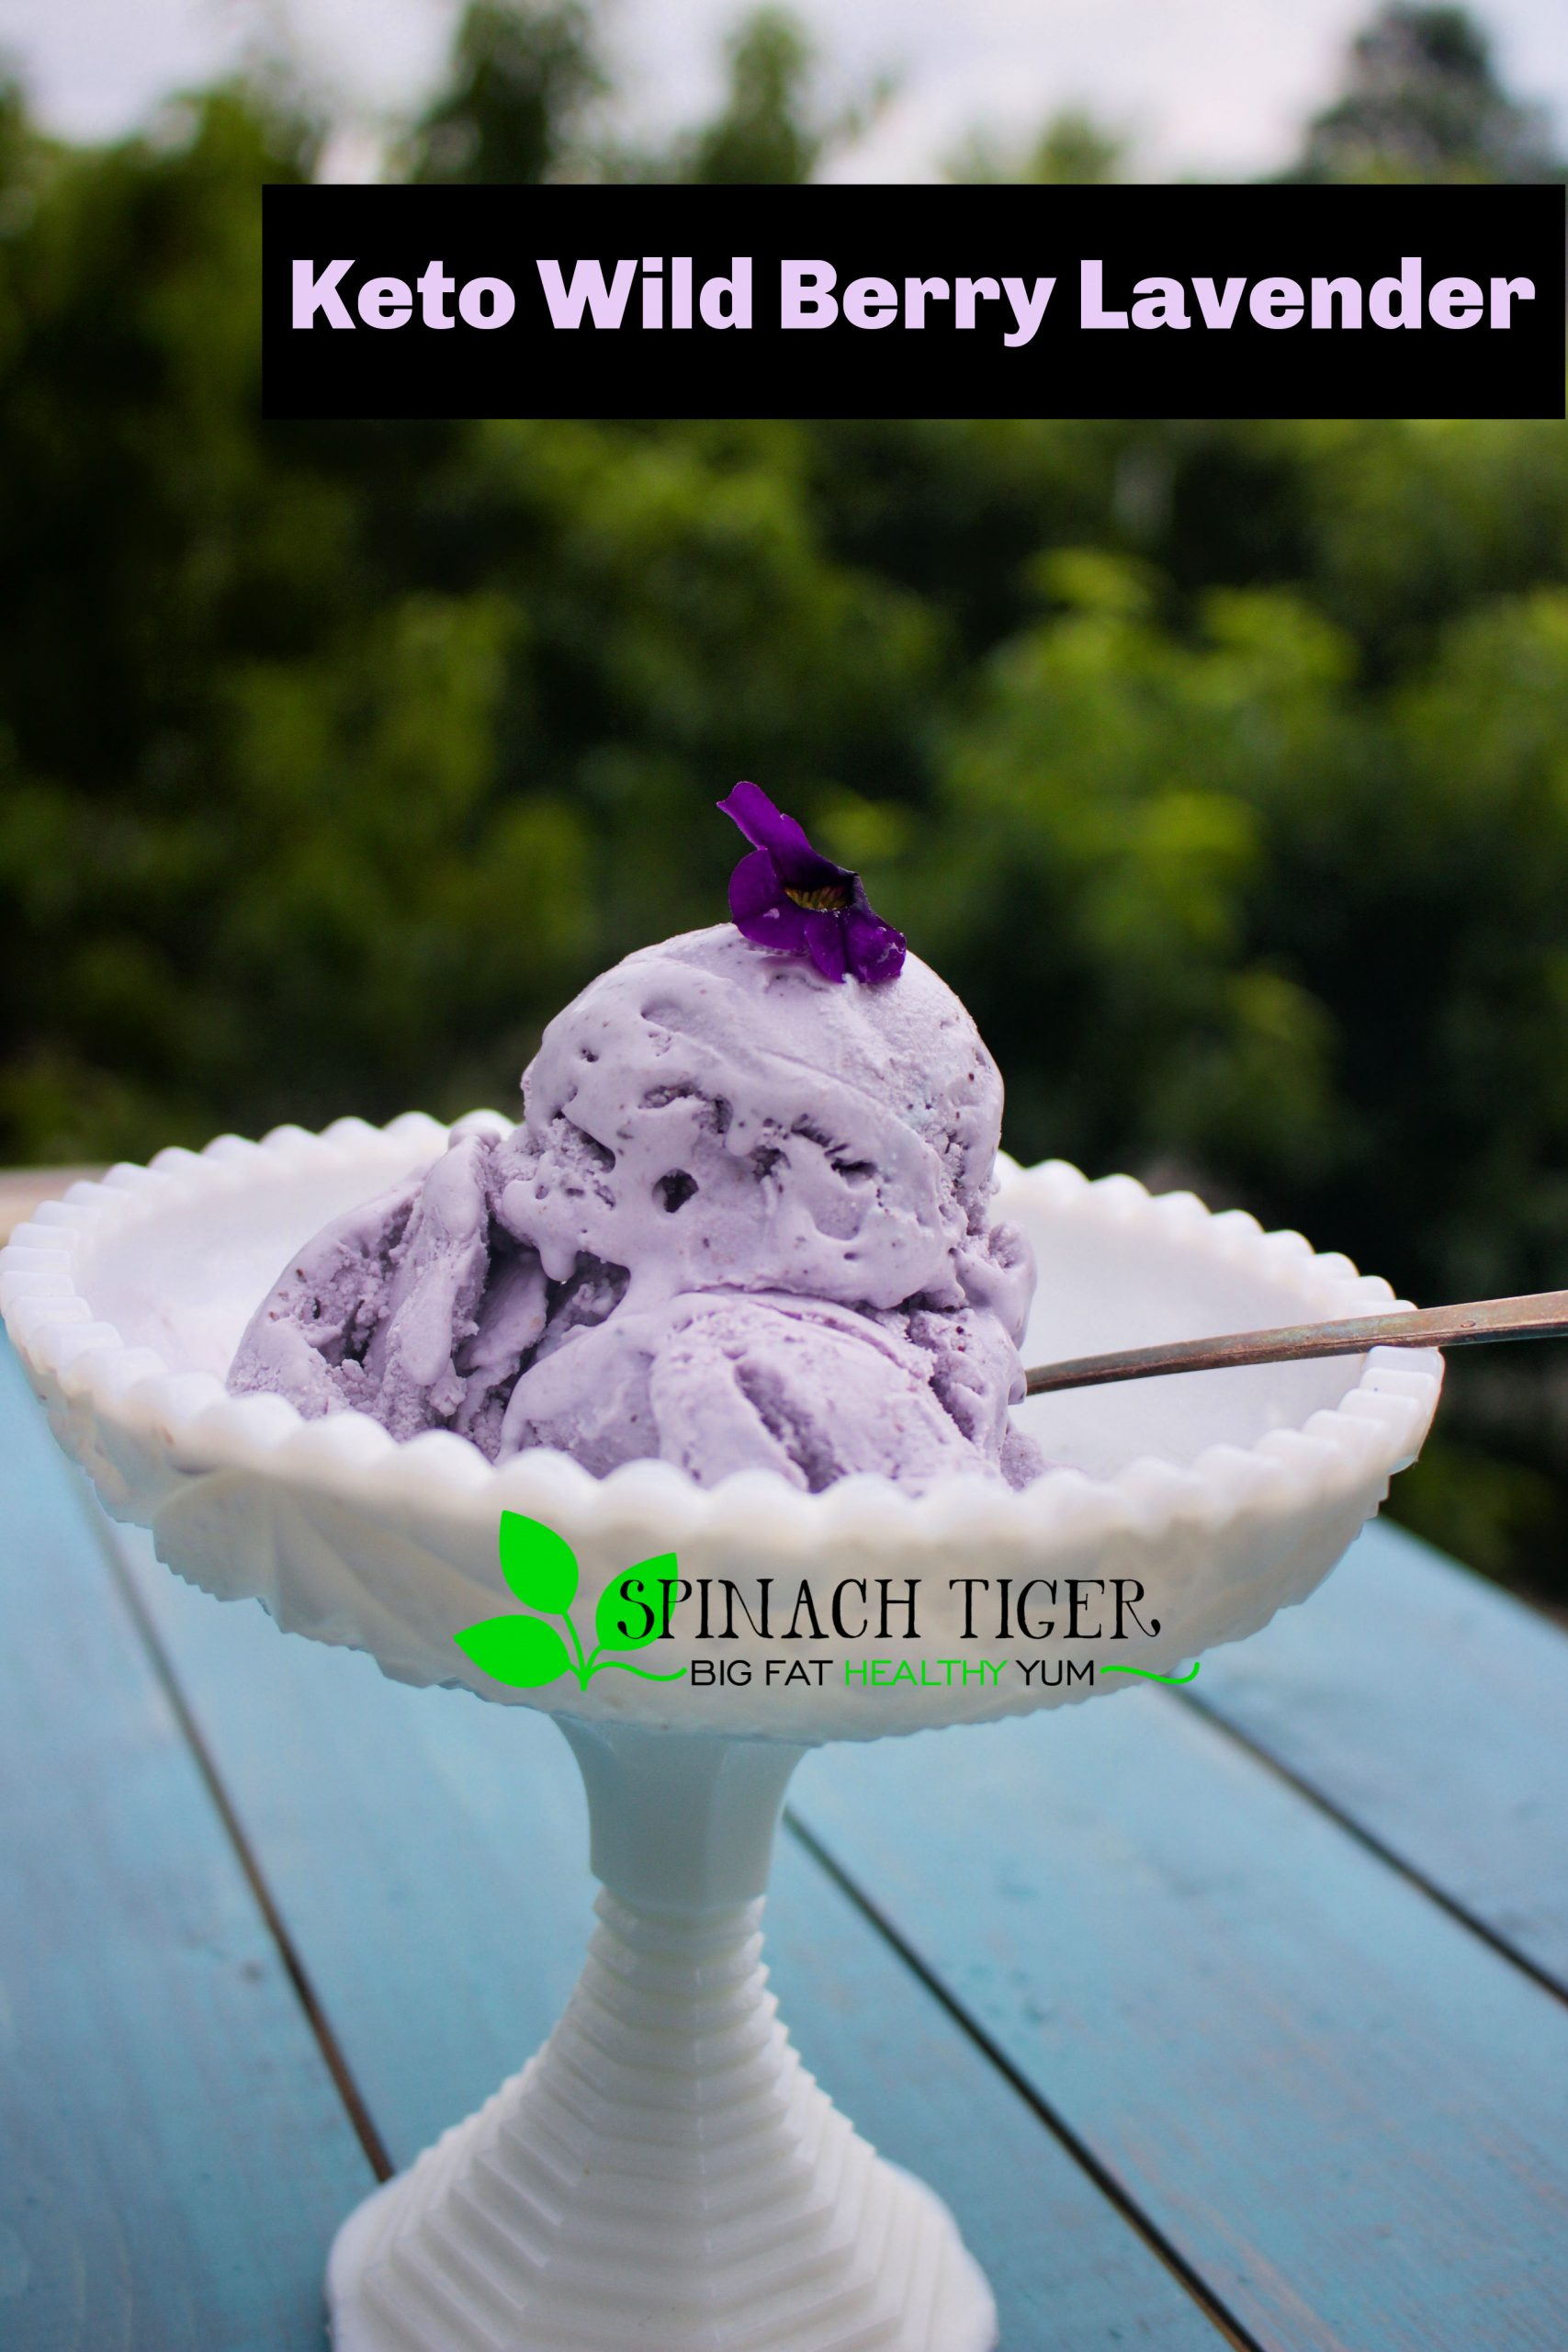 Make Jenny's Wild Berry Lavender recipe SUGAR FREE, GRAIN FREE, KETO Friendly. I used Blueberries, Lavender essential oil, and Swerve to make this creamy dreamy ice cream come true. #ketoicecream #spinachtiger via @angelaroberts